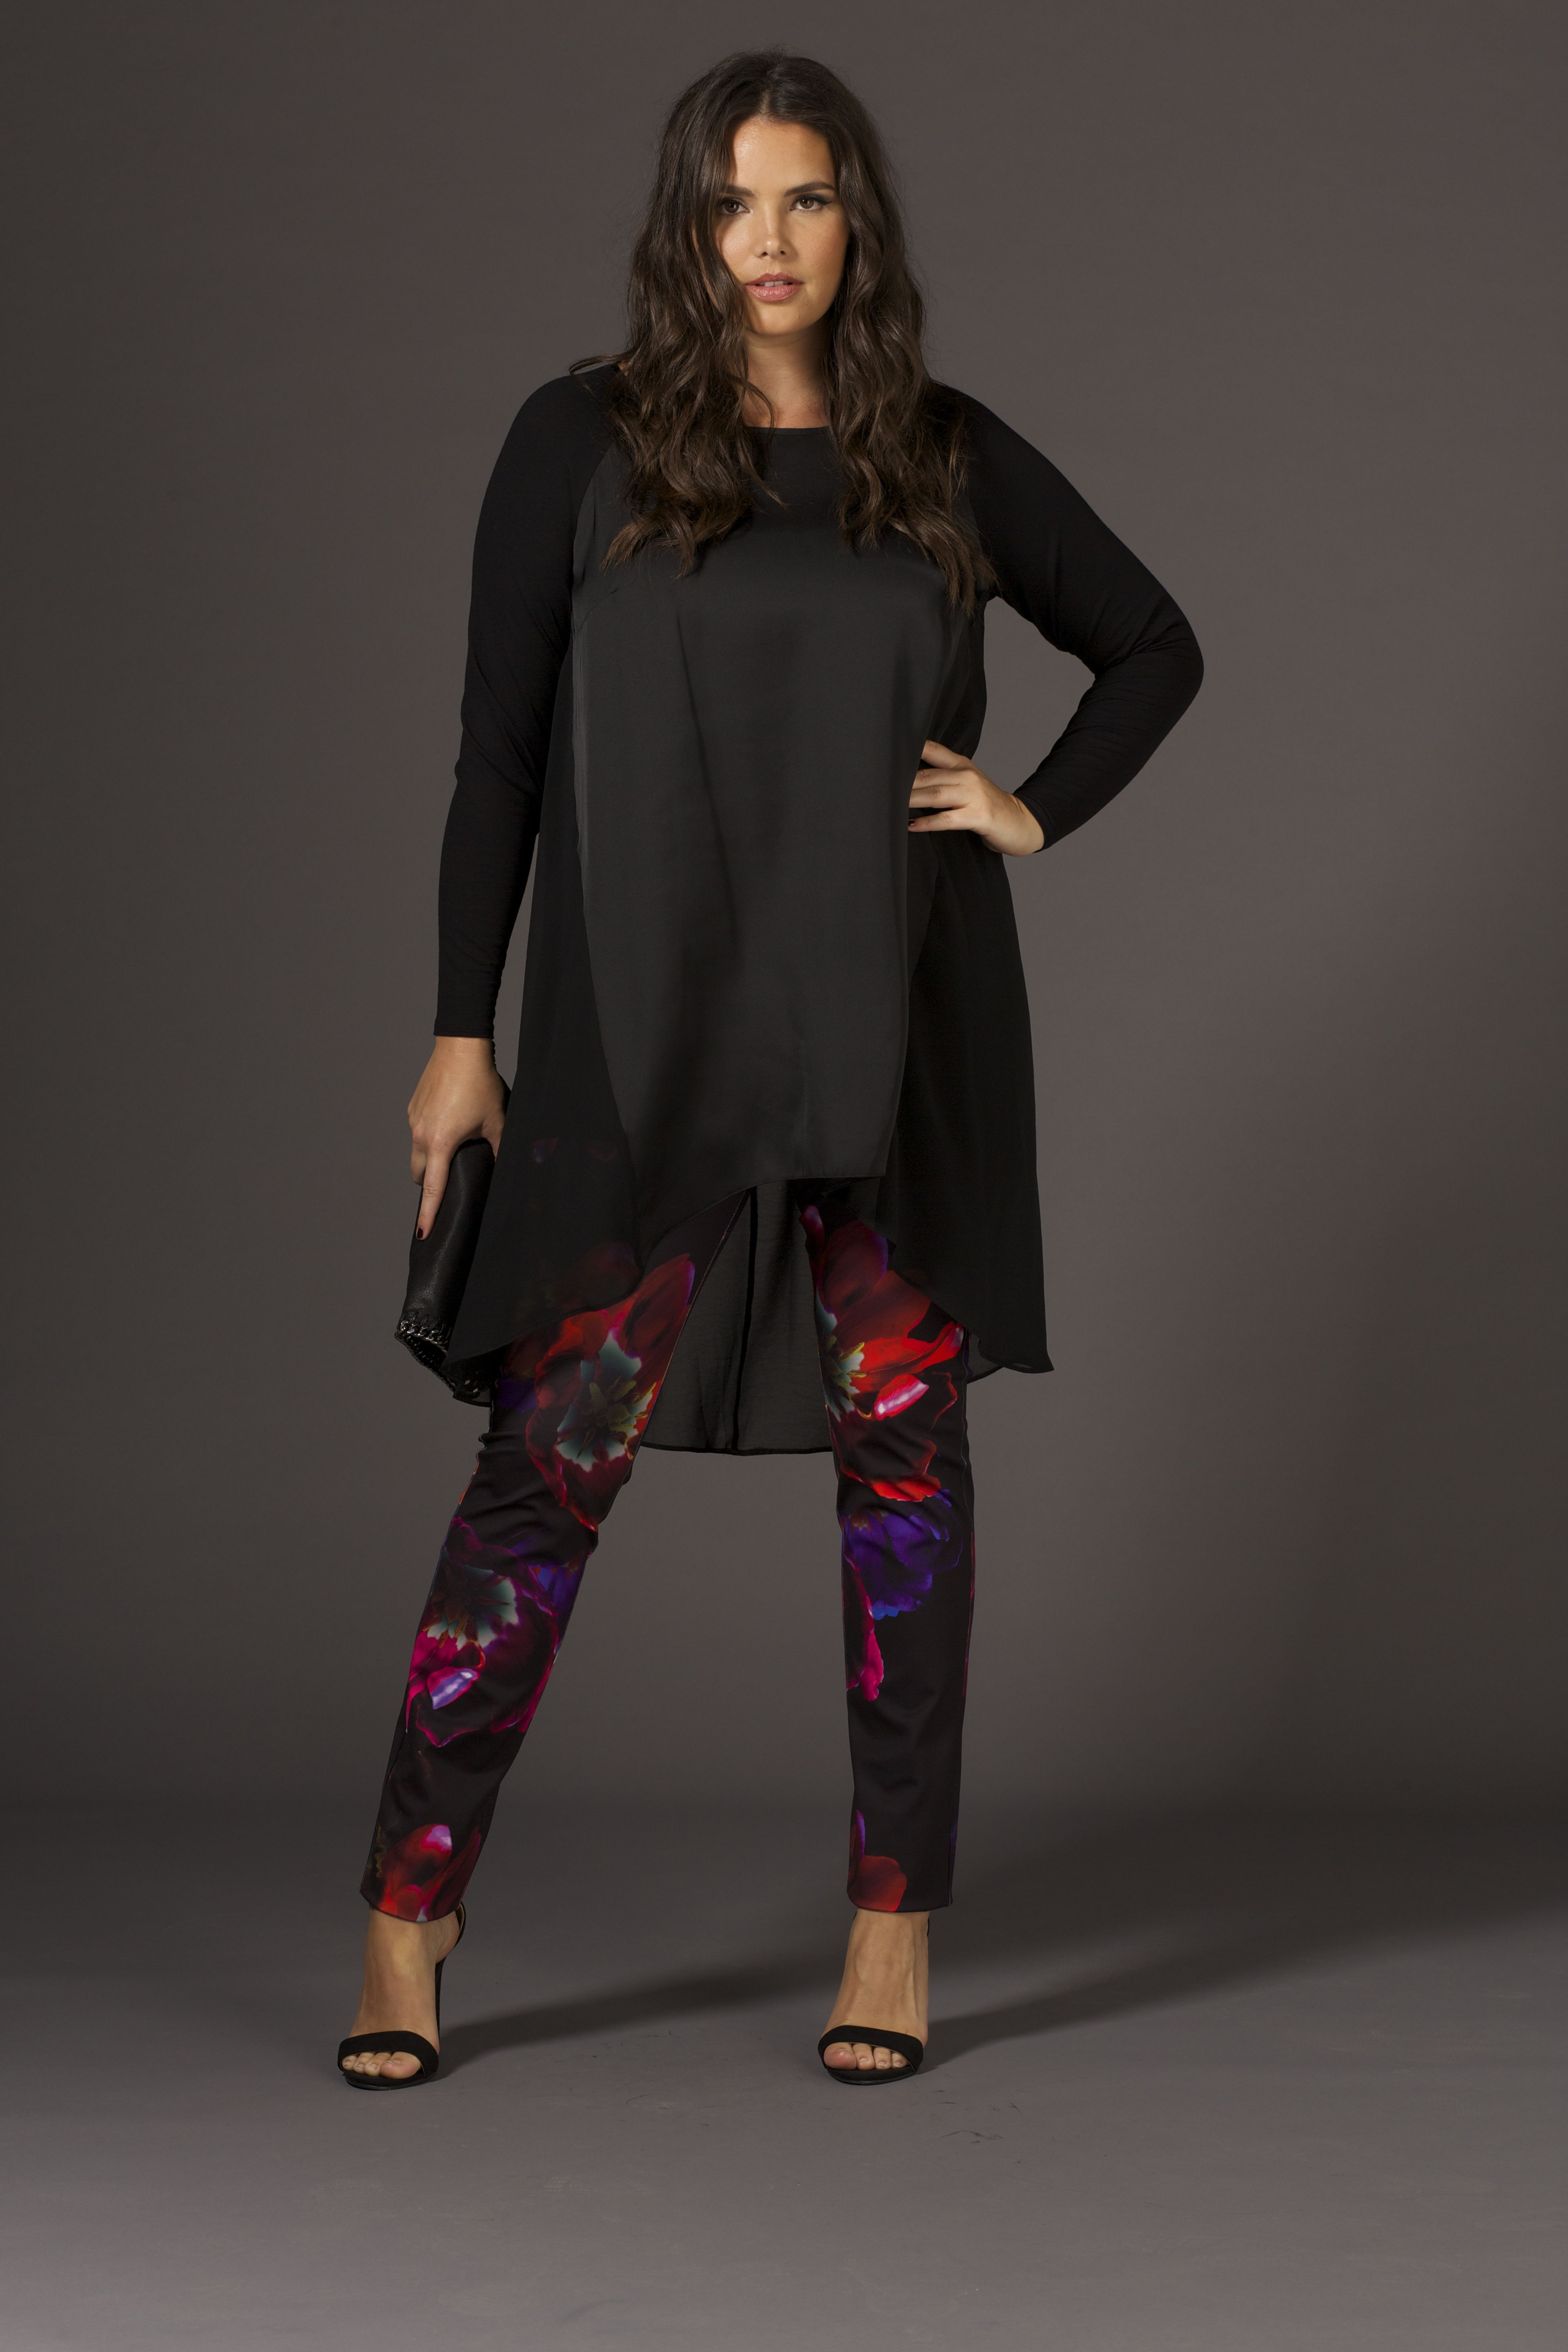 d0db1a6e188 Printed Floral Scuba Jersey Trousers with Satin Front Jersey Sleeve High Low  Hem Tunic - Plus Size Wallis - Live Unlimited AW14